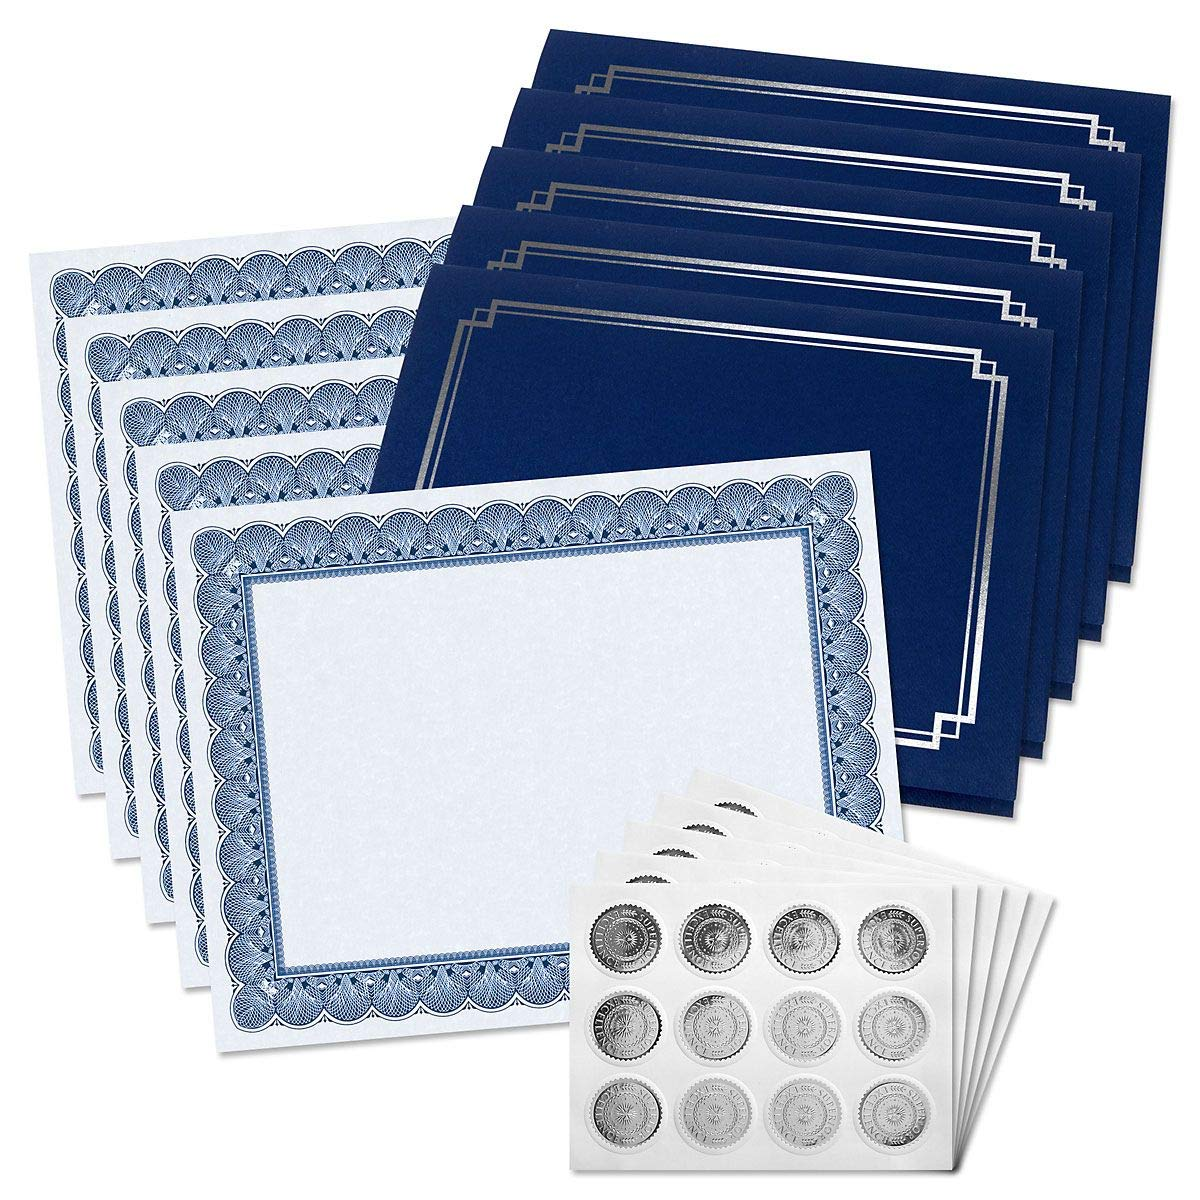 Classic Elite Award Certificate Collection with Silver Seals - Includes 25 Blank-Inside Certificate Papers, 25 Heavy Linen Blue with Silver Border Certificate folders, 25 Silver foil Seals by Fine Stationery